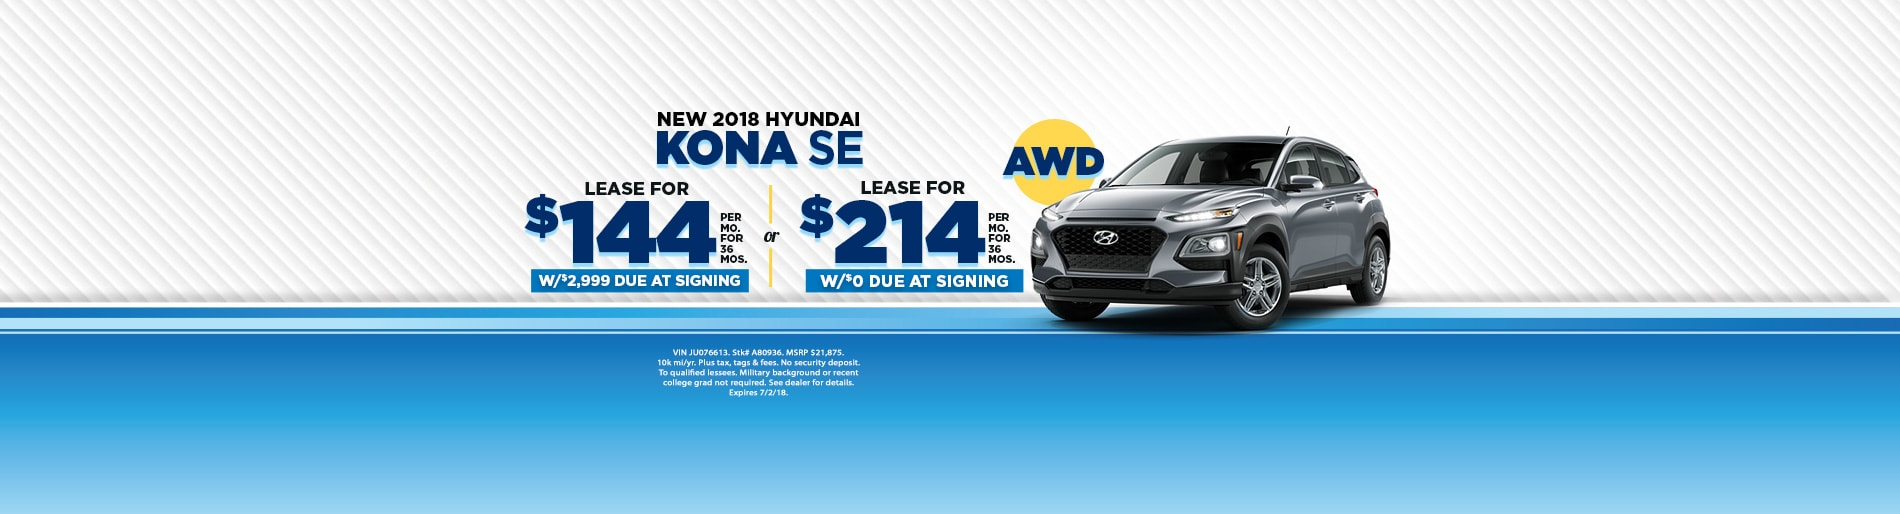 sport dealership pzev sedan sonata hyundai vehicles offers springfield on htm dealers used w pa specials in